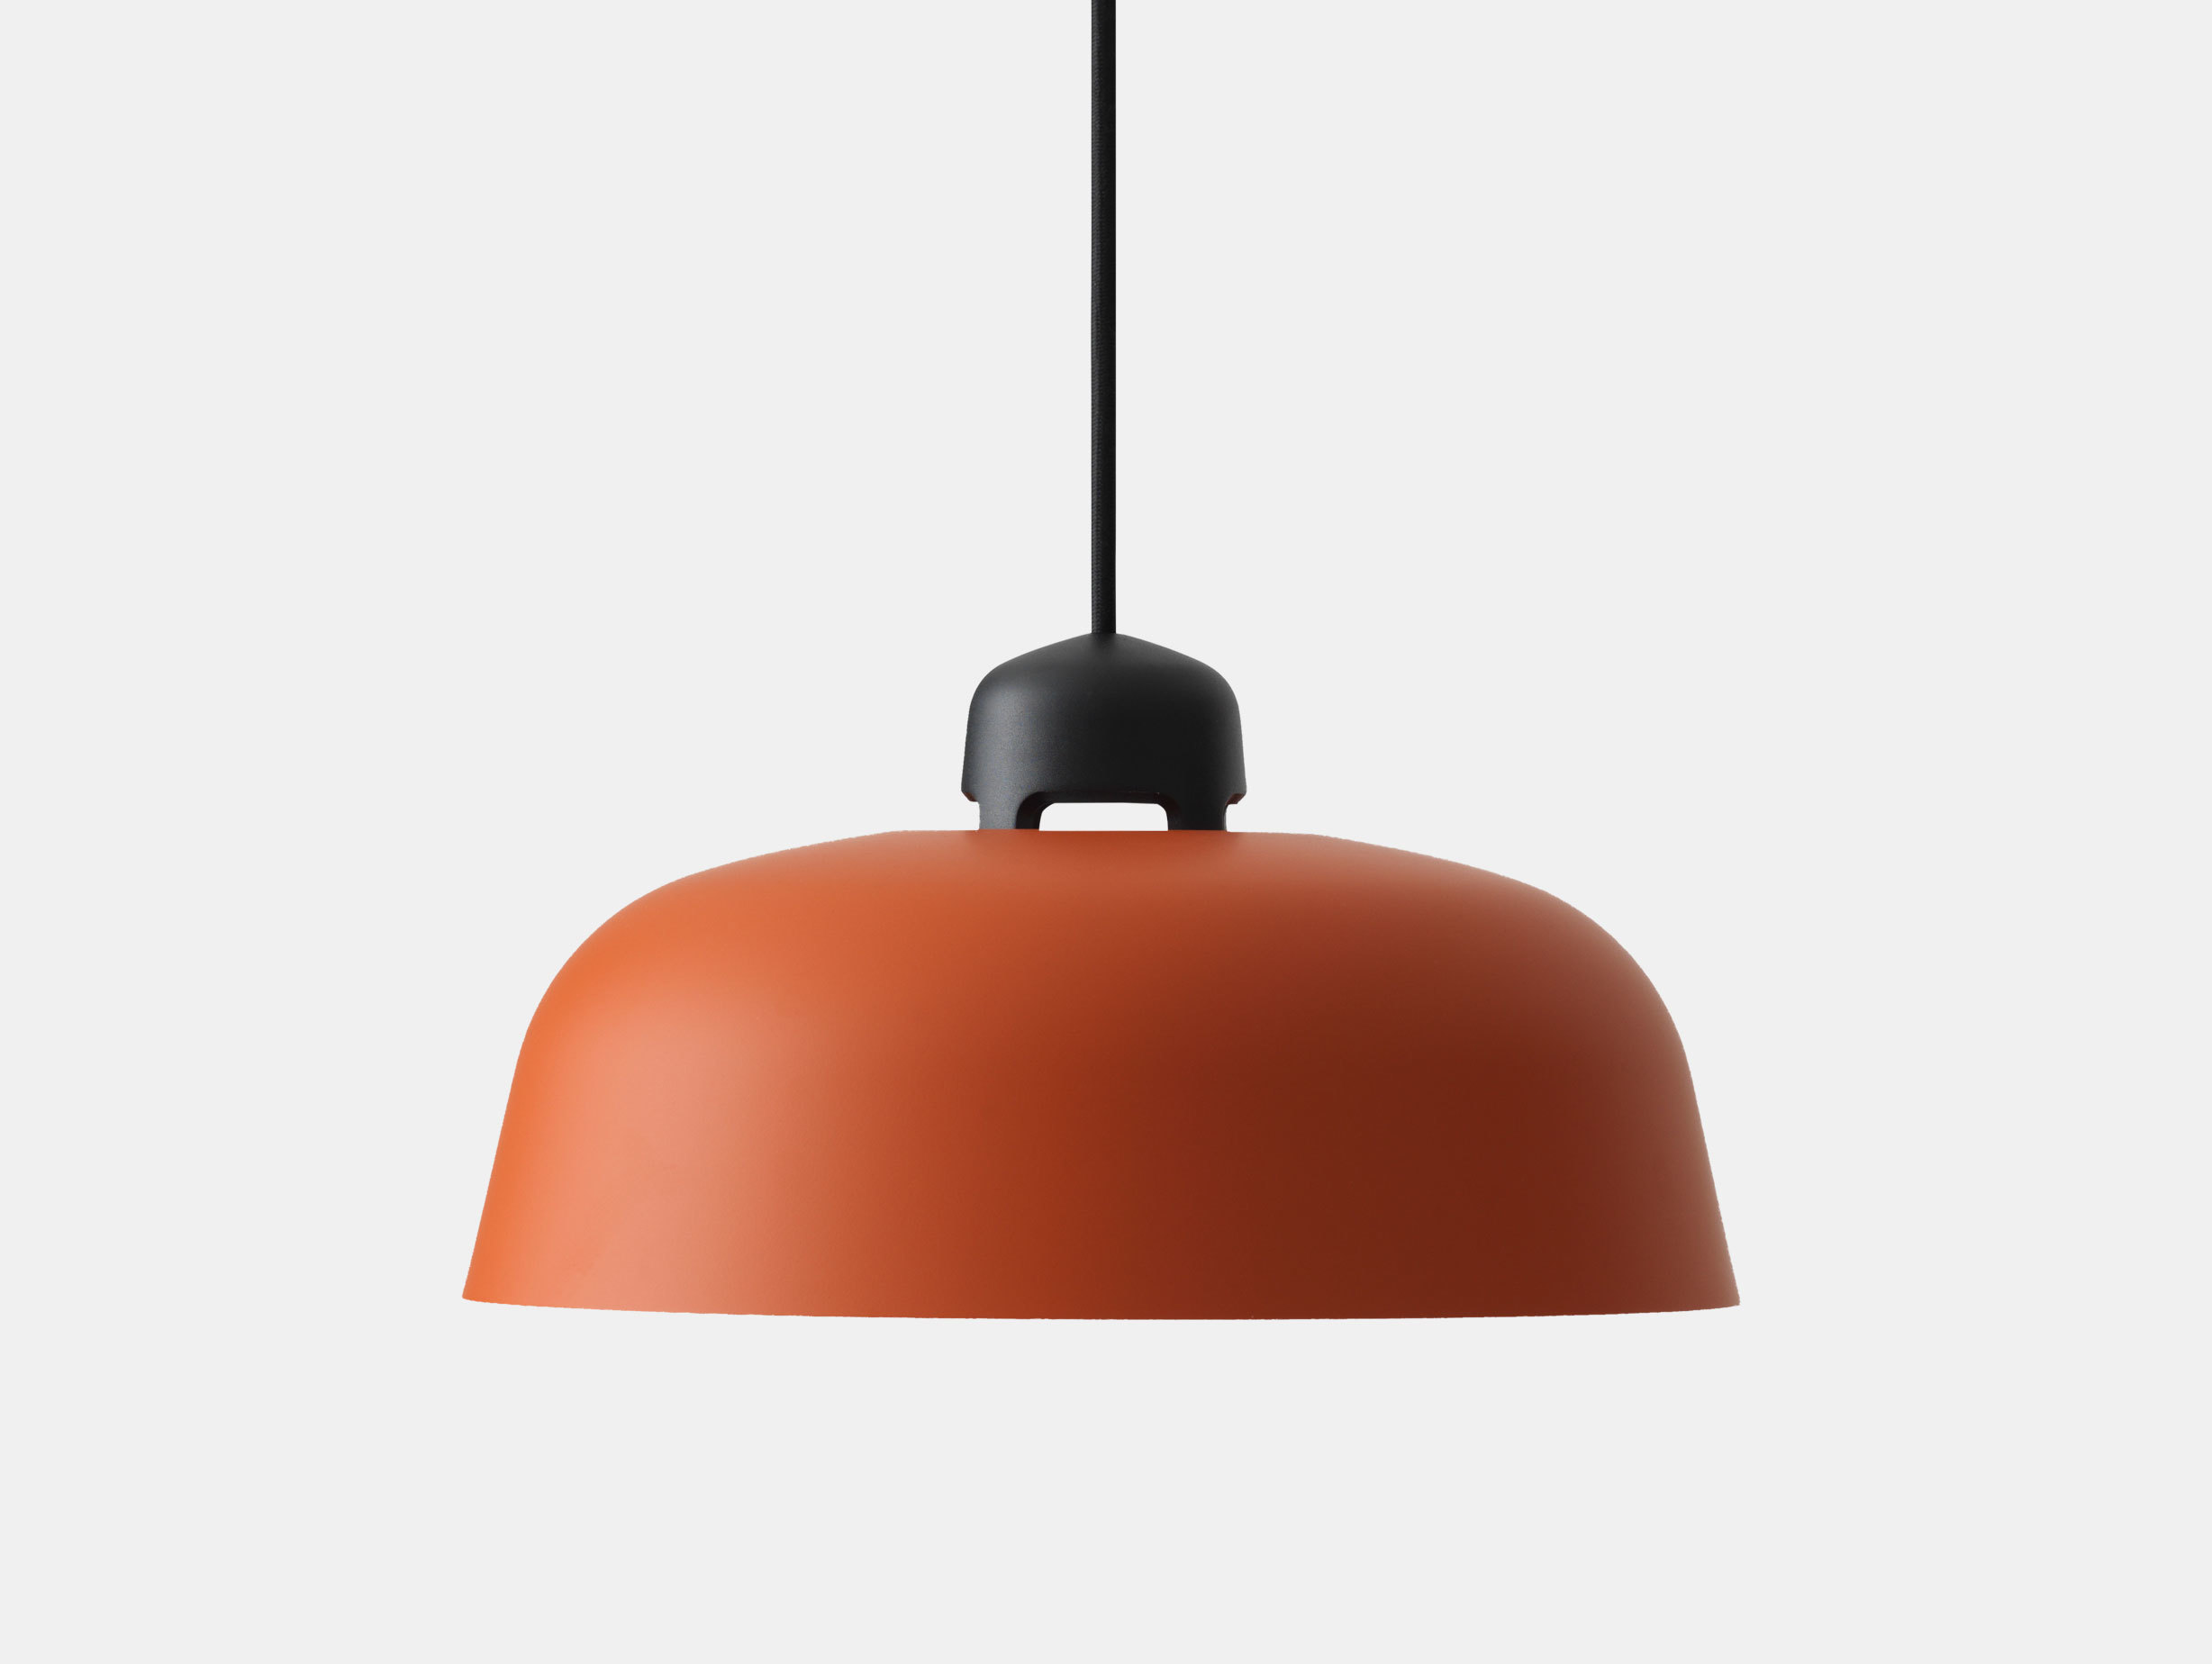 Wastberg W162 Dalston Pendant Light Black Orange Sam Hecht Kim Colin